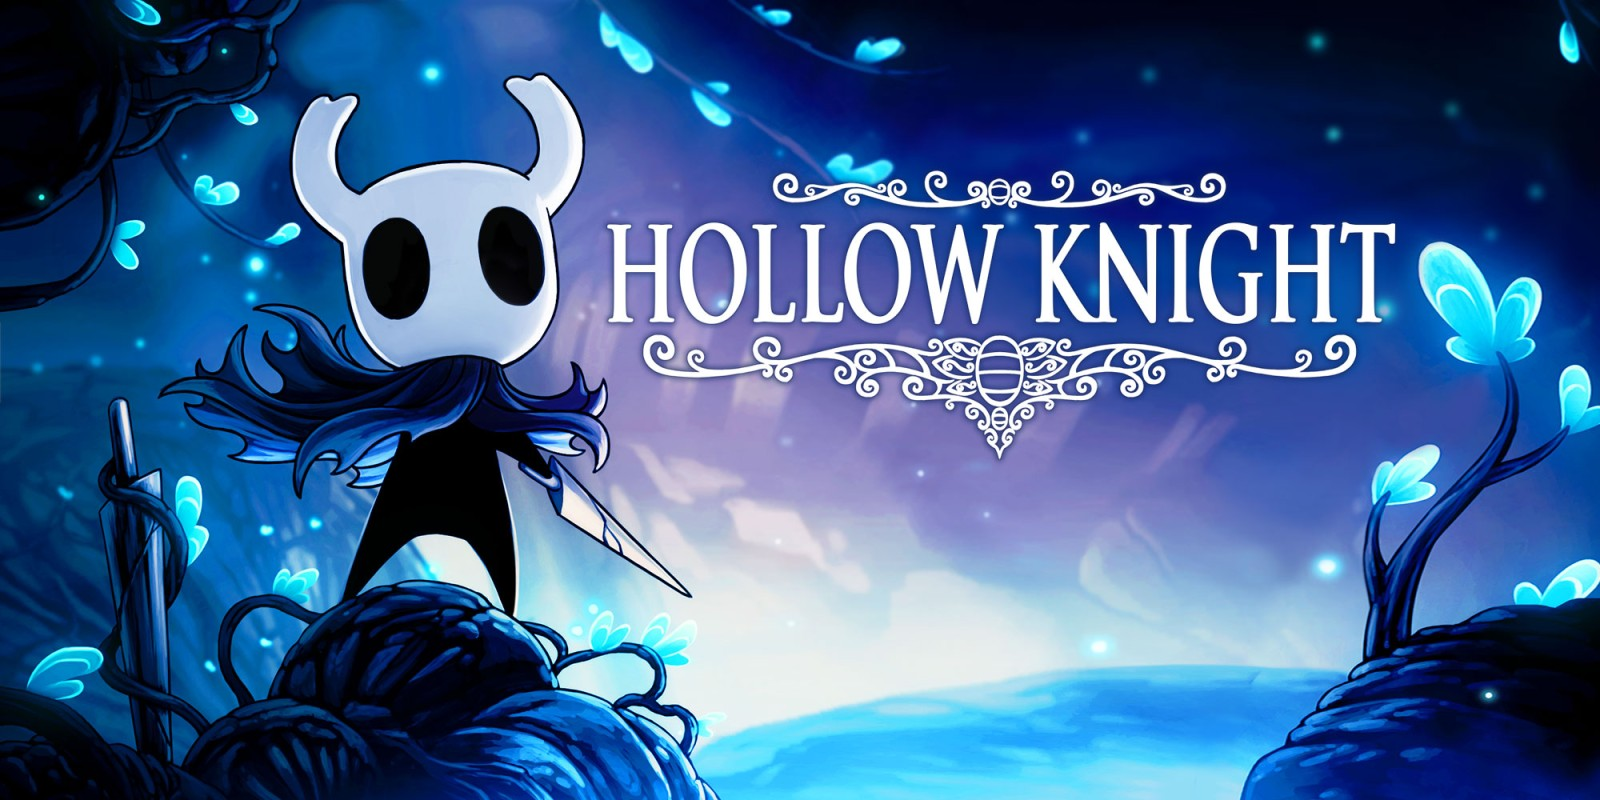 hollowknight1.jpg